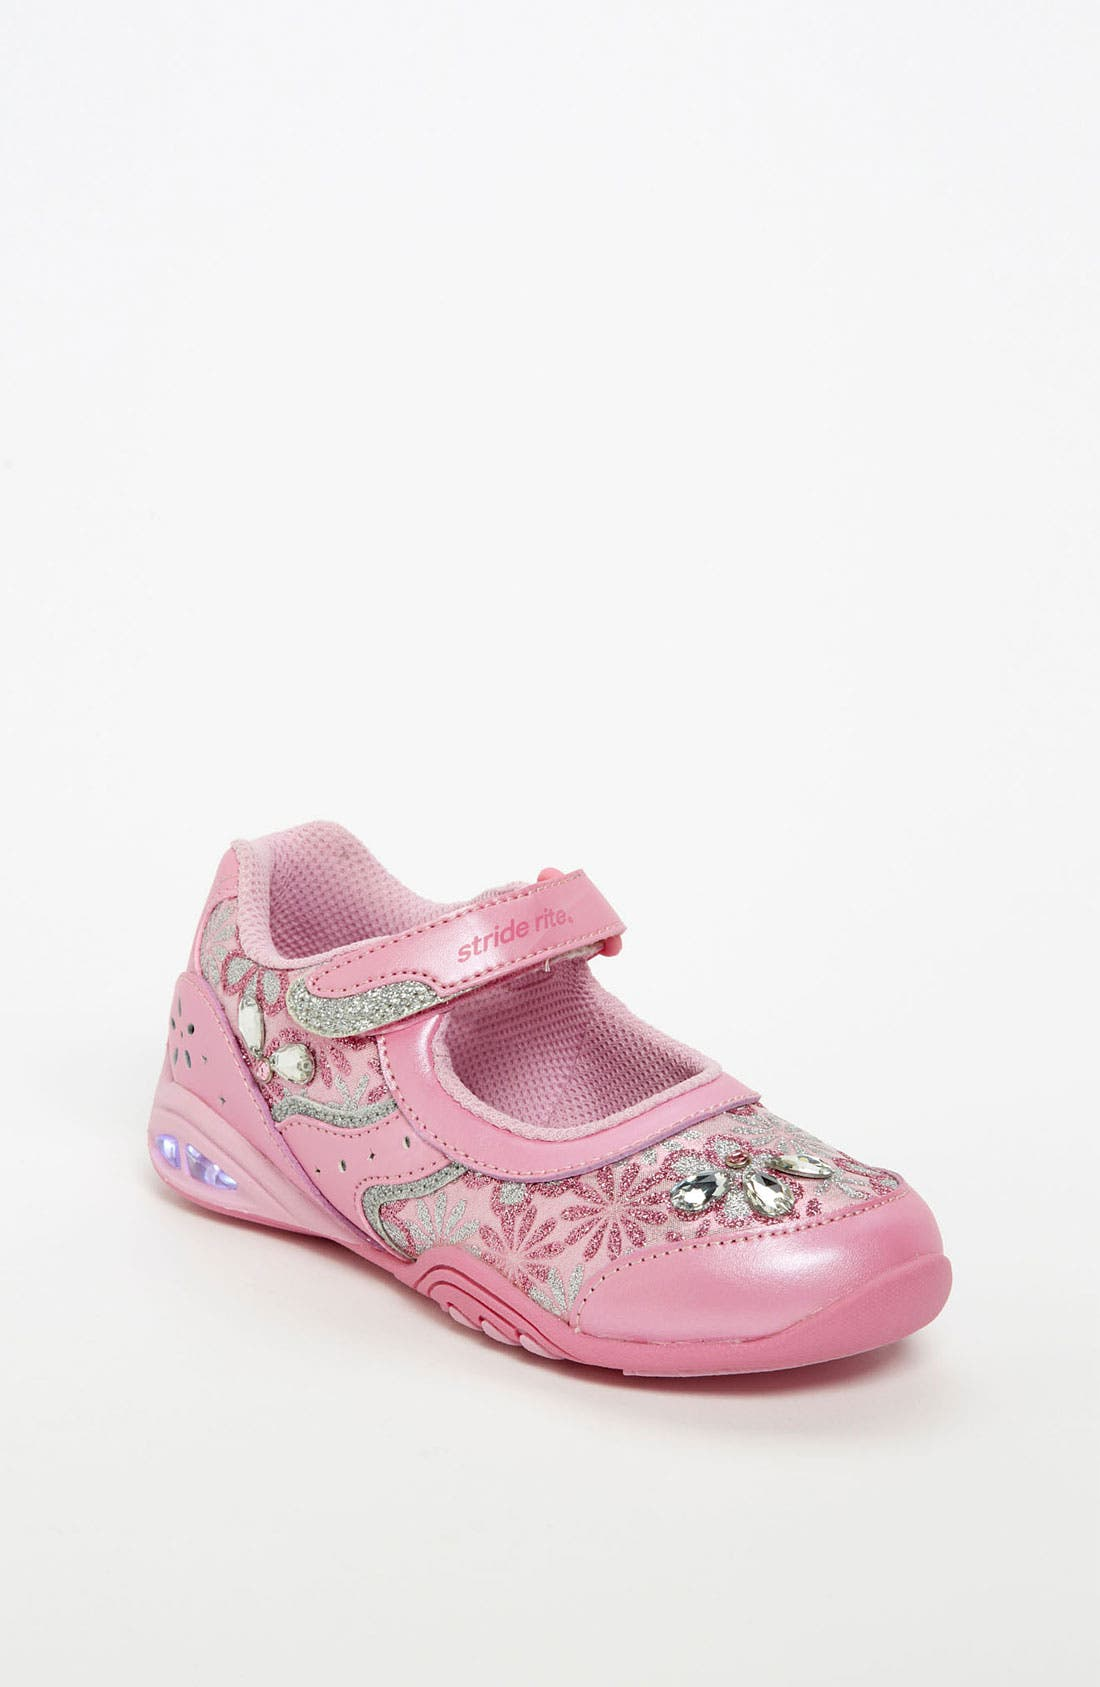 Alternate Image 1 Selected - Stride Rite 'Rae' Sneaker (Walker, Toddler & Little Kid)